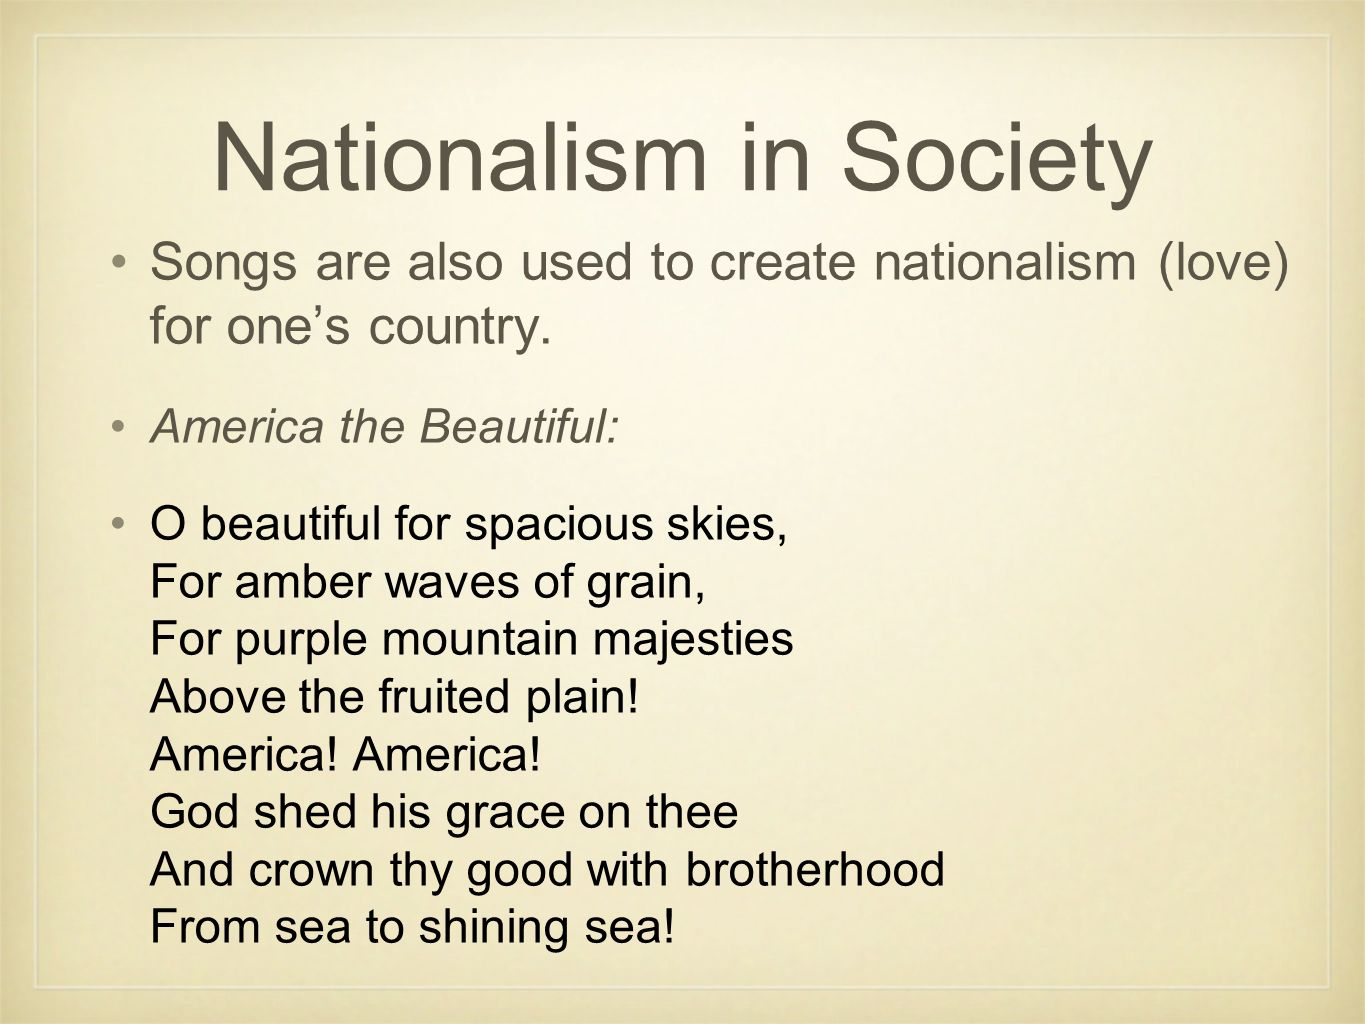 Nationalism Break it down: National - a group of people or a country Ism - the act of doing something Nationalism - the act of having pride for your people or country.